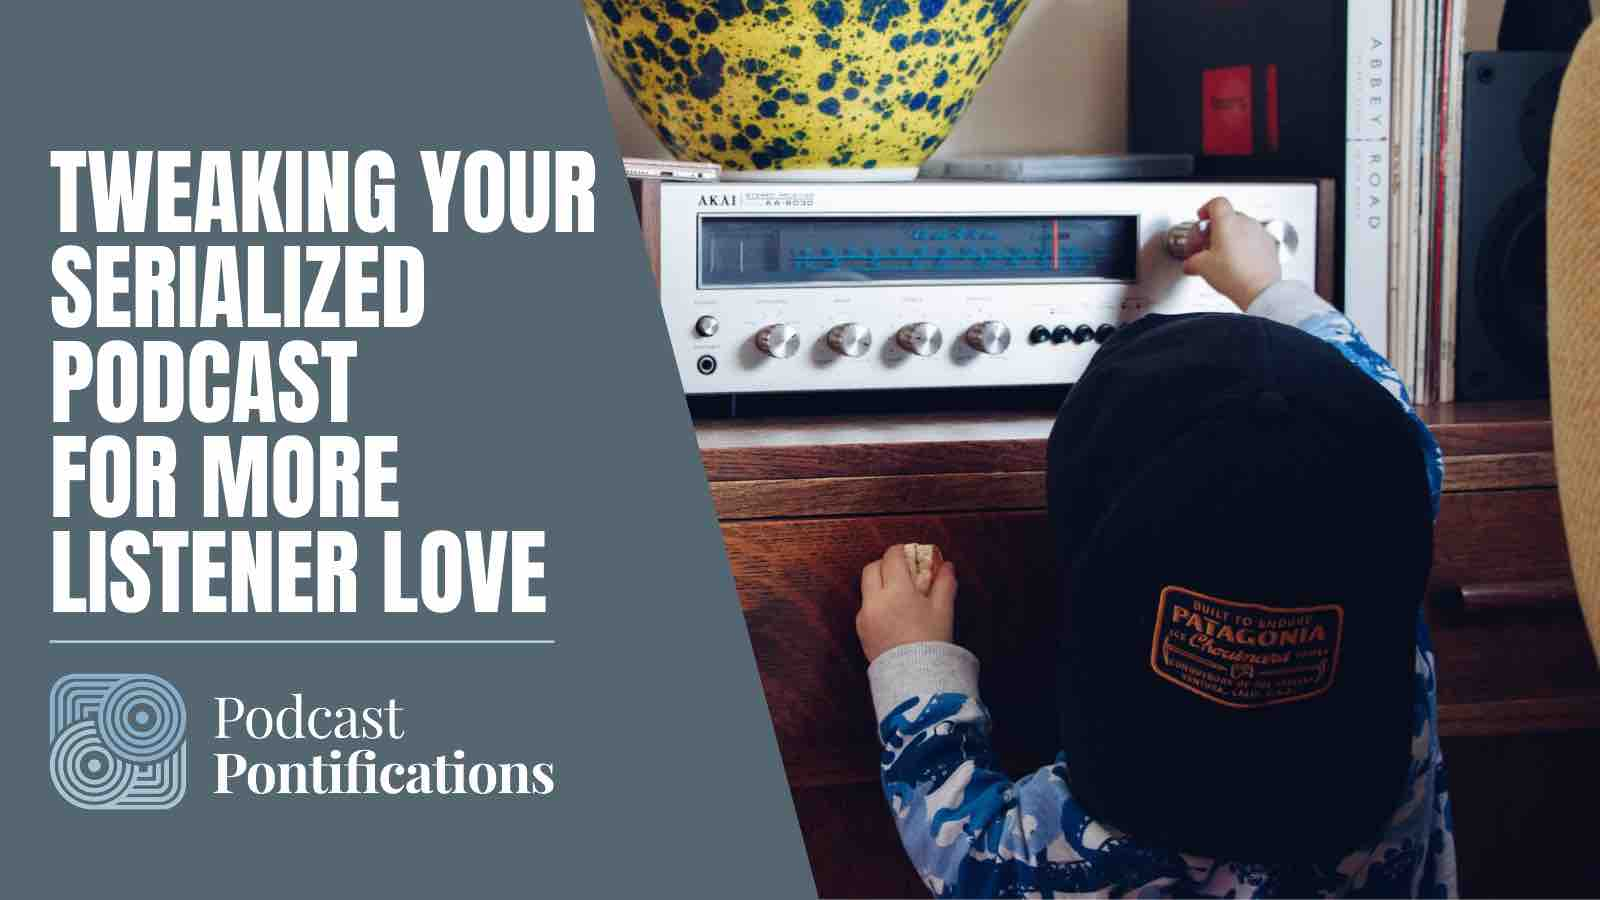 Tweaking Your Serialized Podcast For More Listener Love